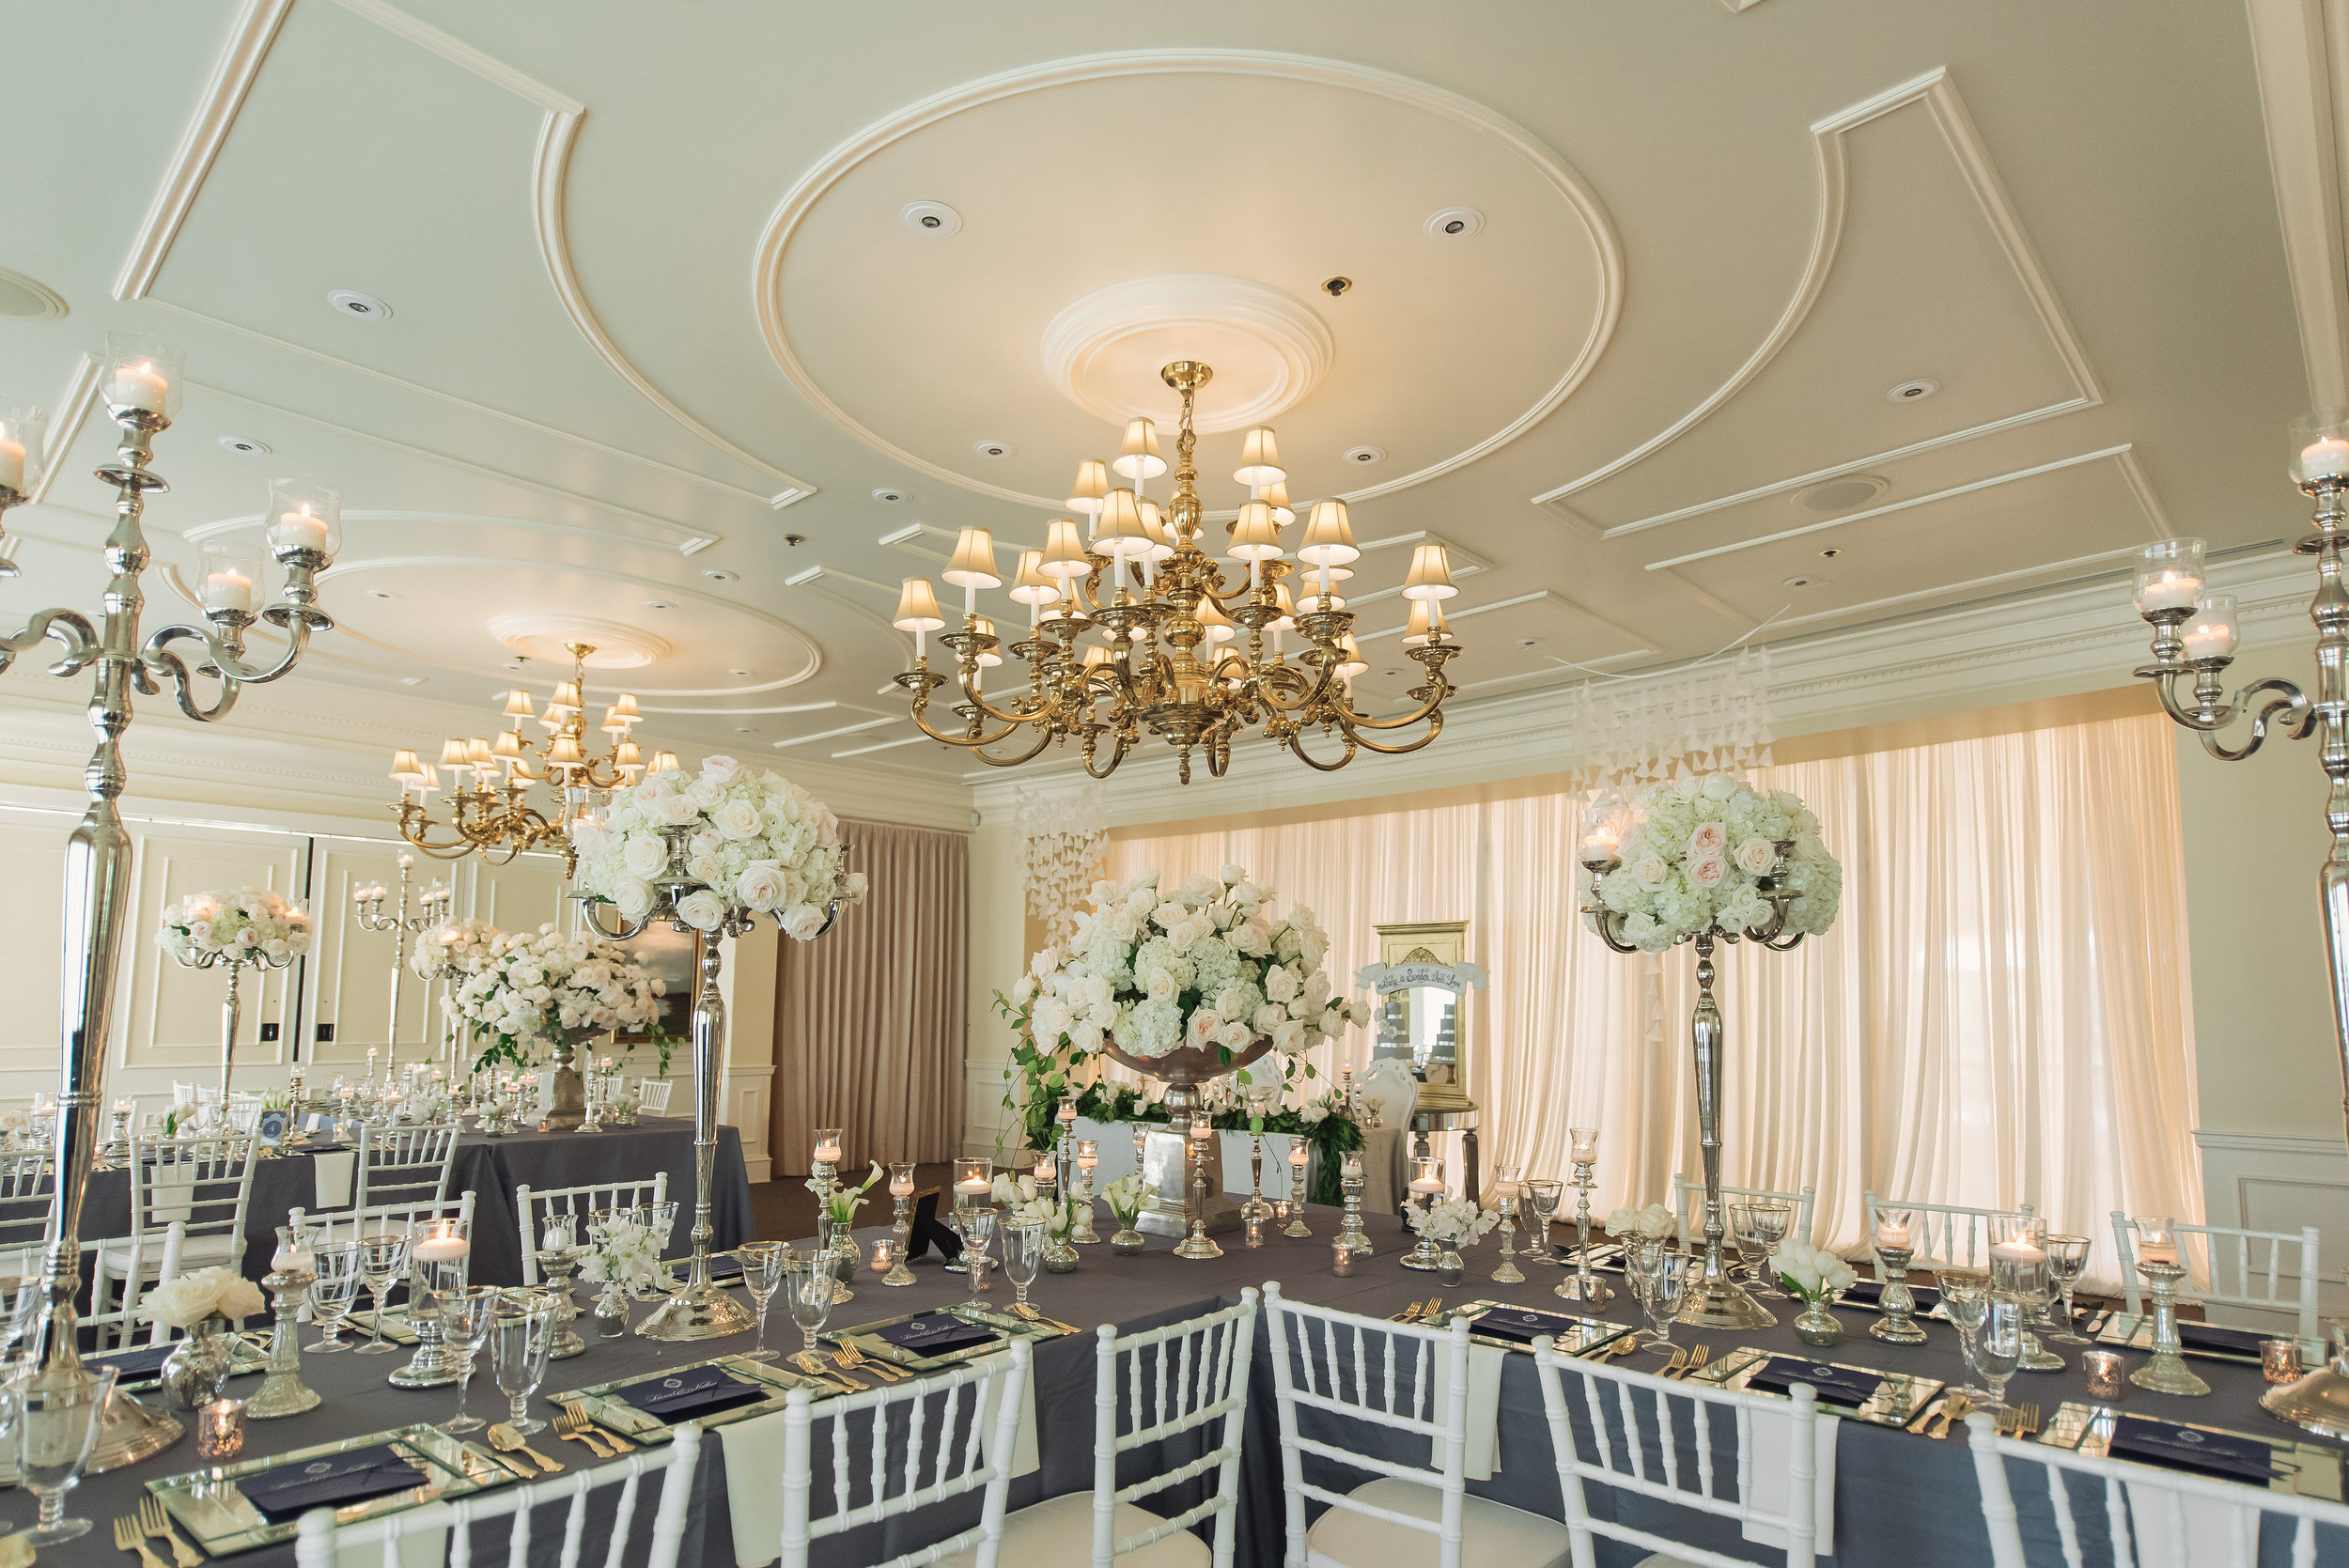 Wedding Photography: Kathy Thomas | Wedding Reception: Lake Nona Country Club| Wedding Planner: The Busy Bee